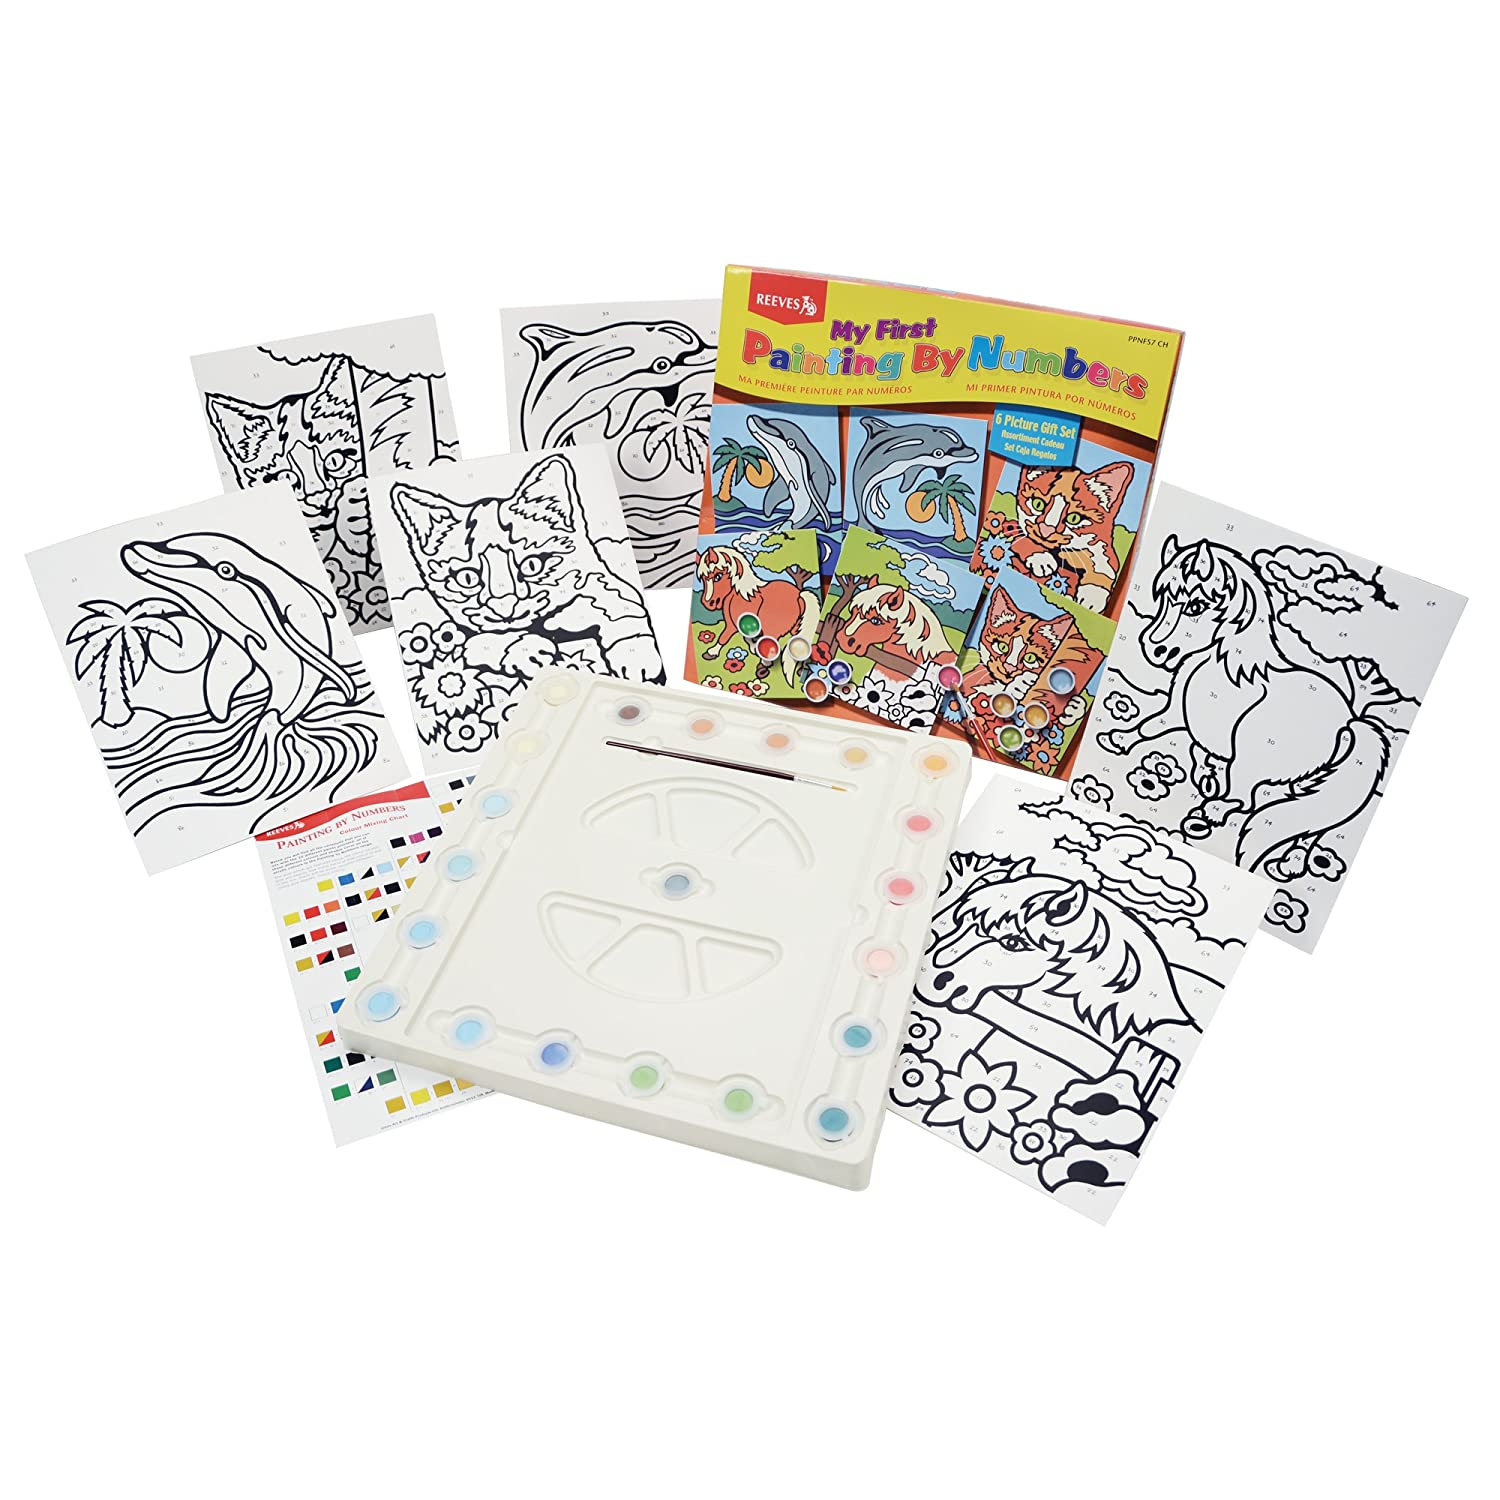 amazon com reeves my first painting by numbers gift set arts